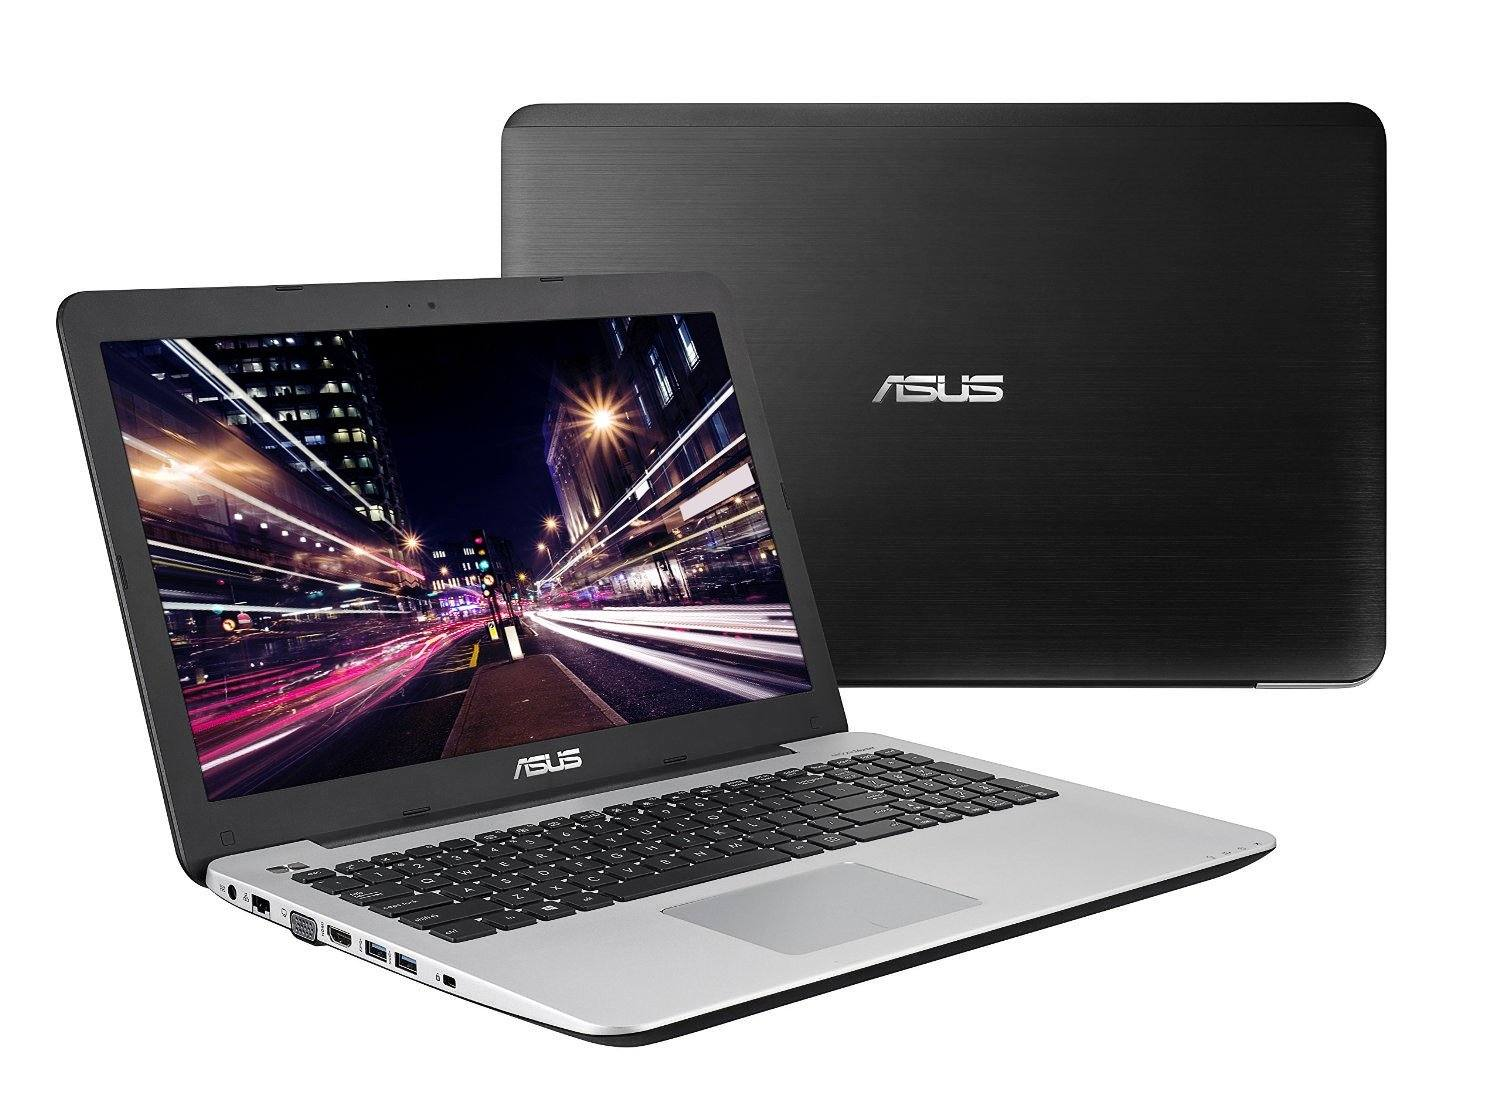 good cheap laptop to play league of legends